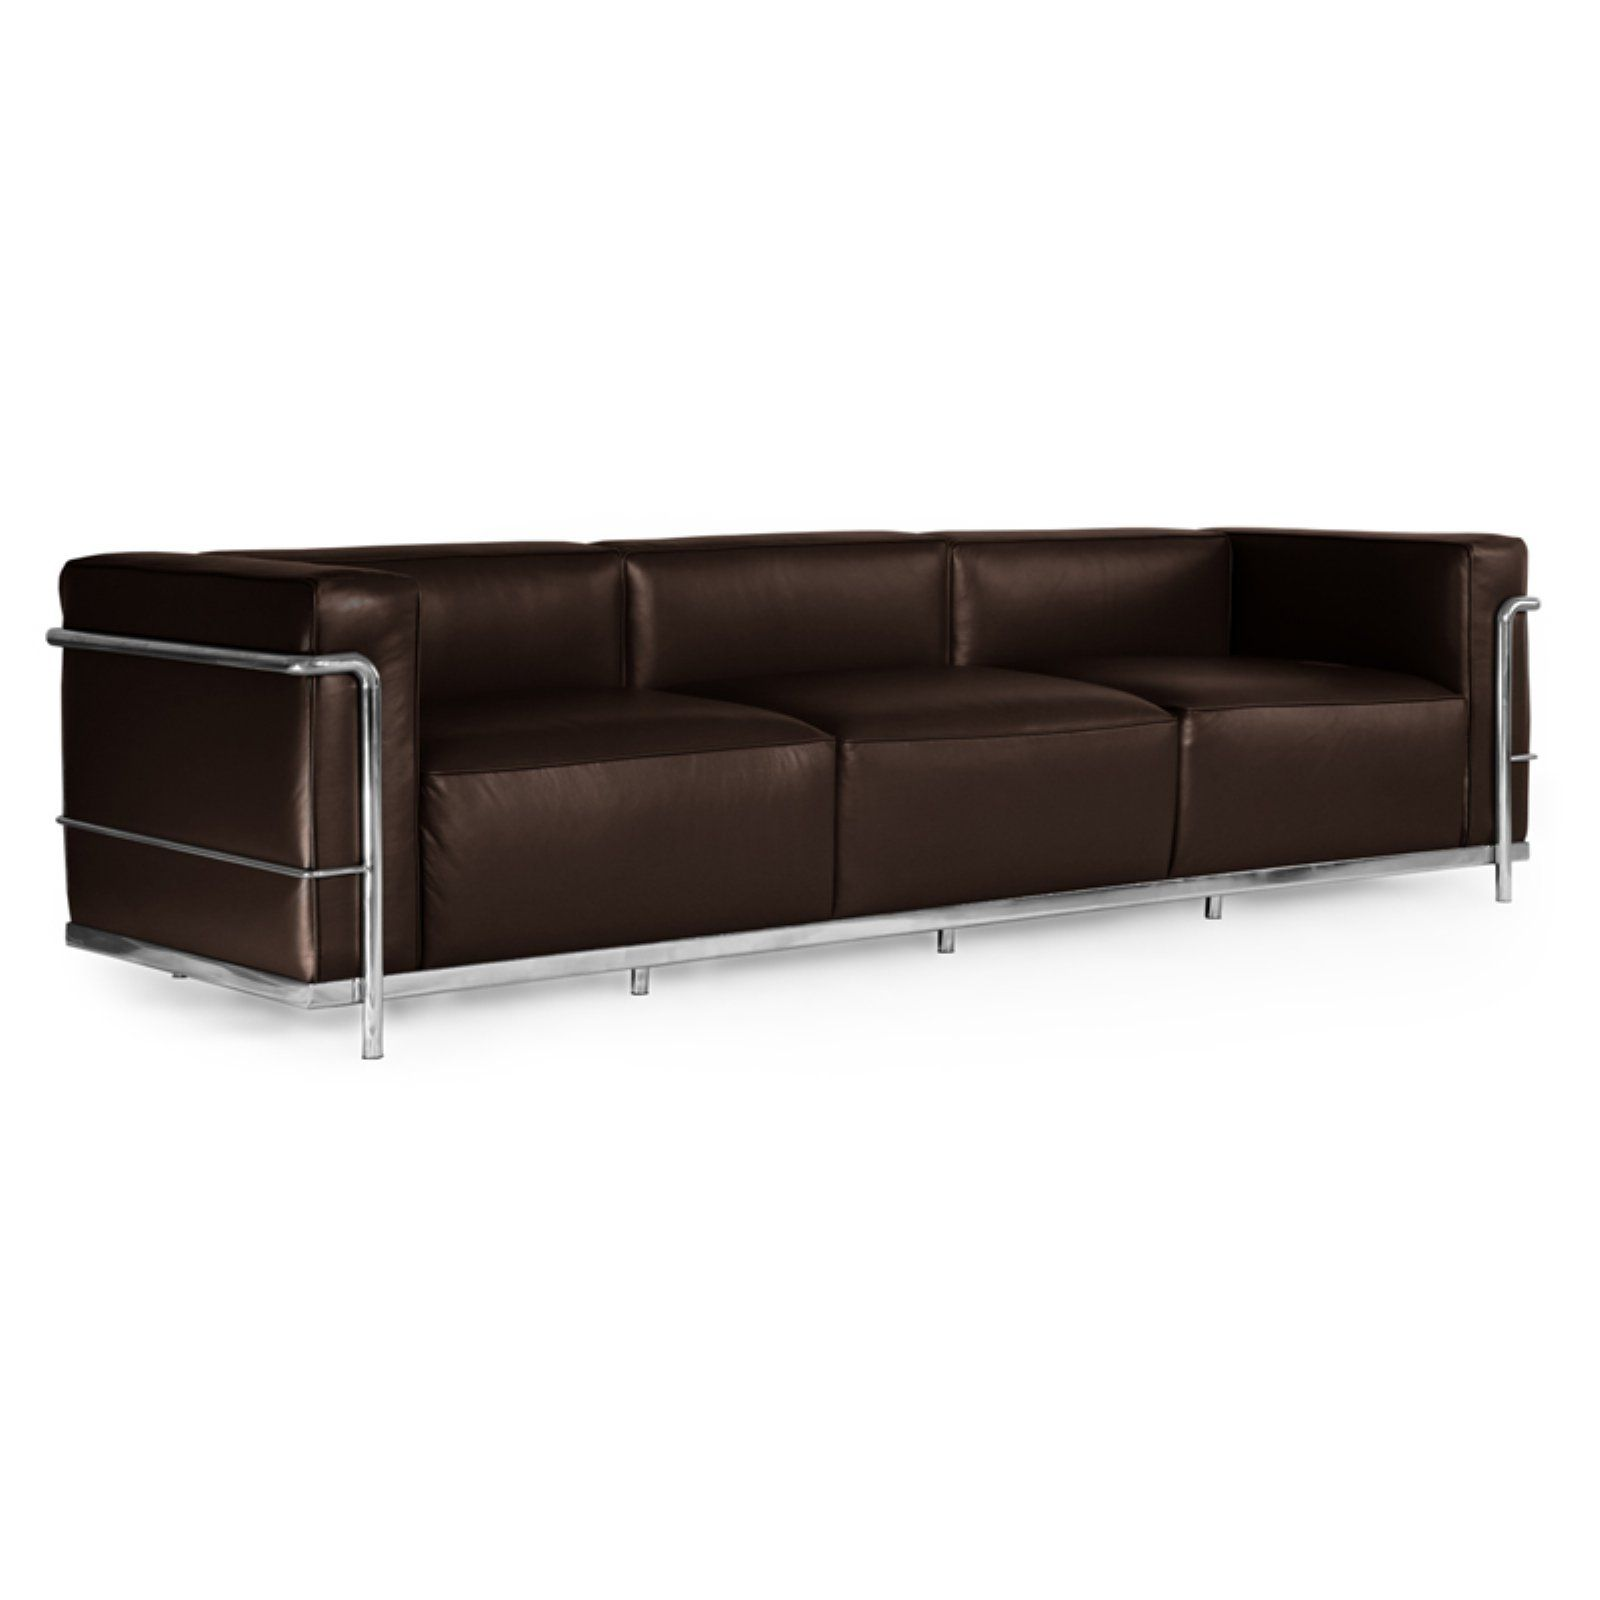 Wondrous Kardiel Roche Premium Aniline Leather Loveseat Choco Brown Caraccident5 Cool Chair Designs And Ideas Caraccident5Info